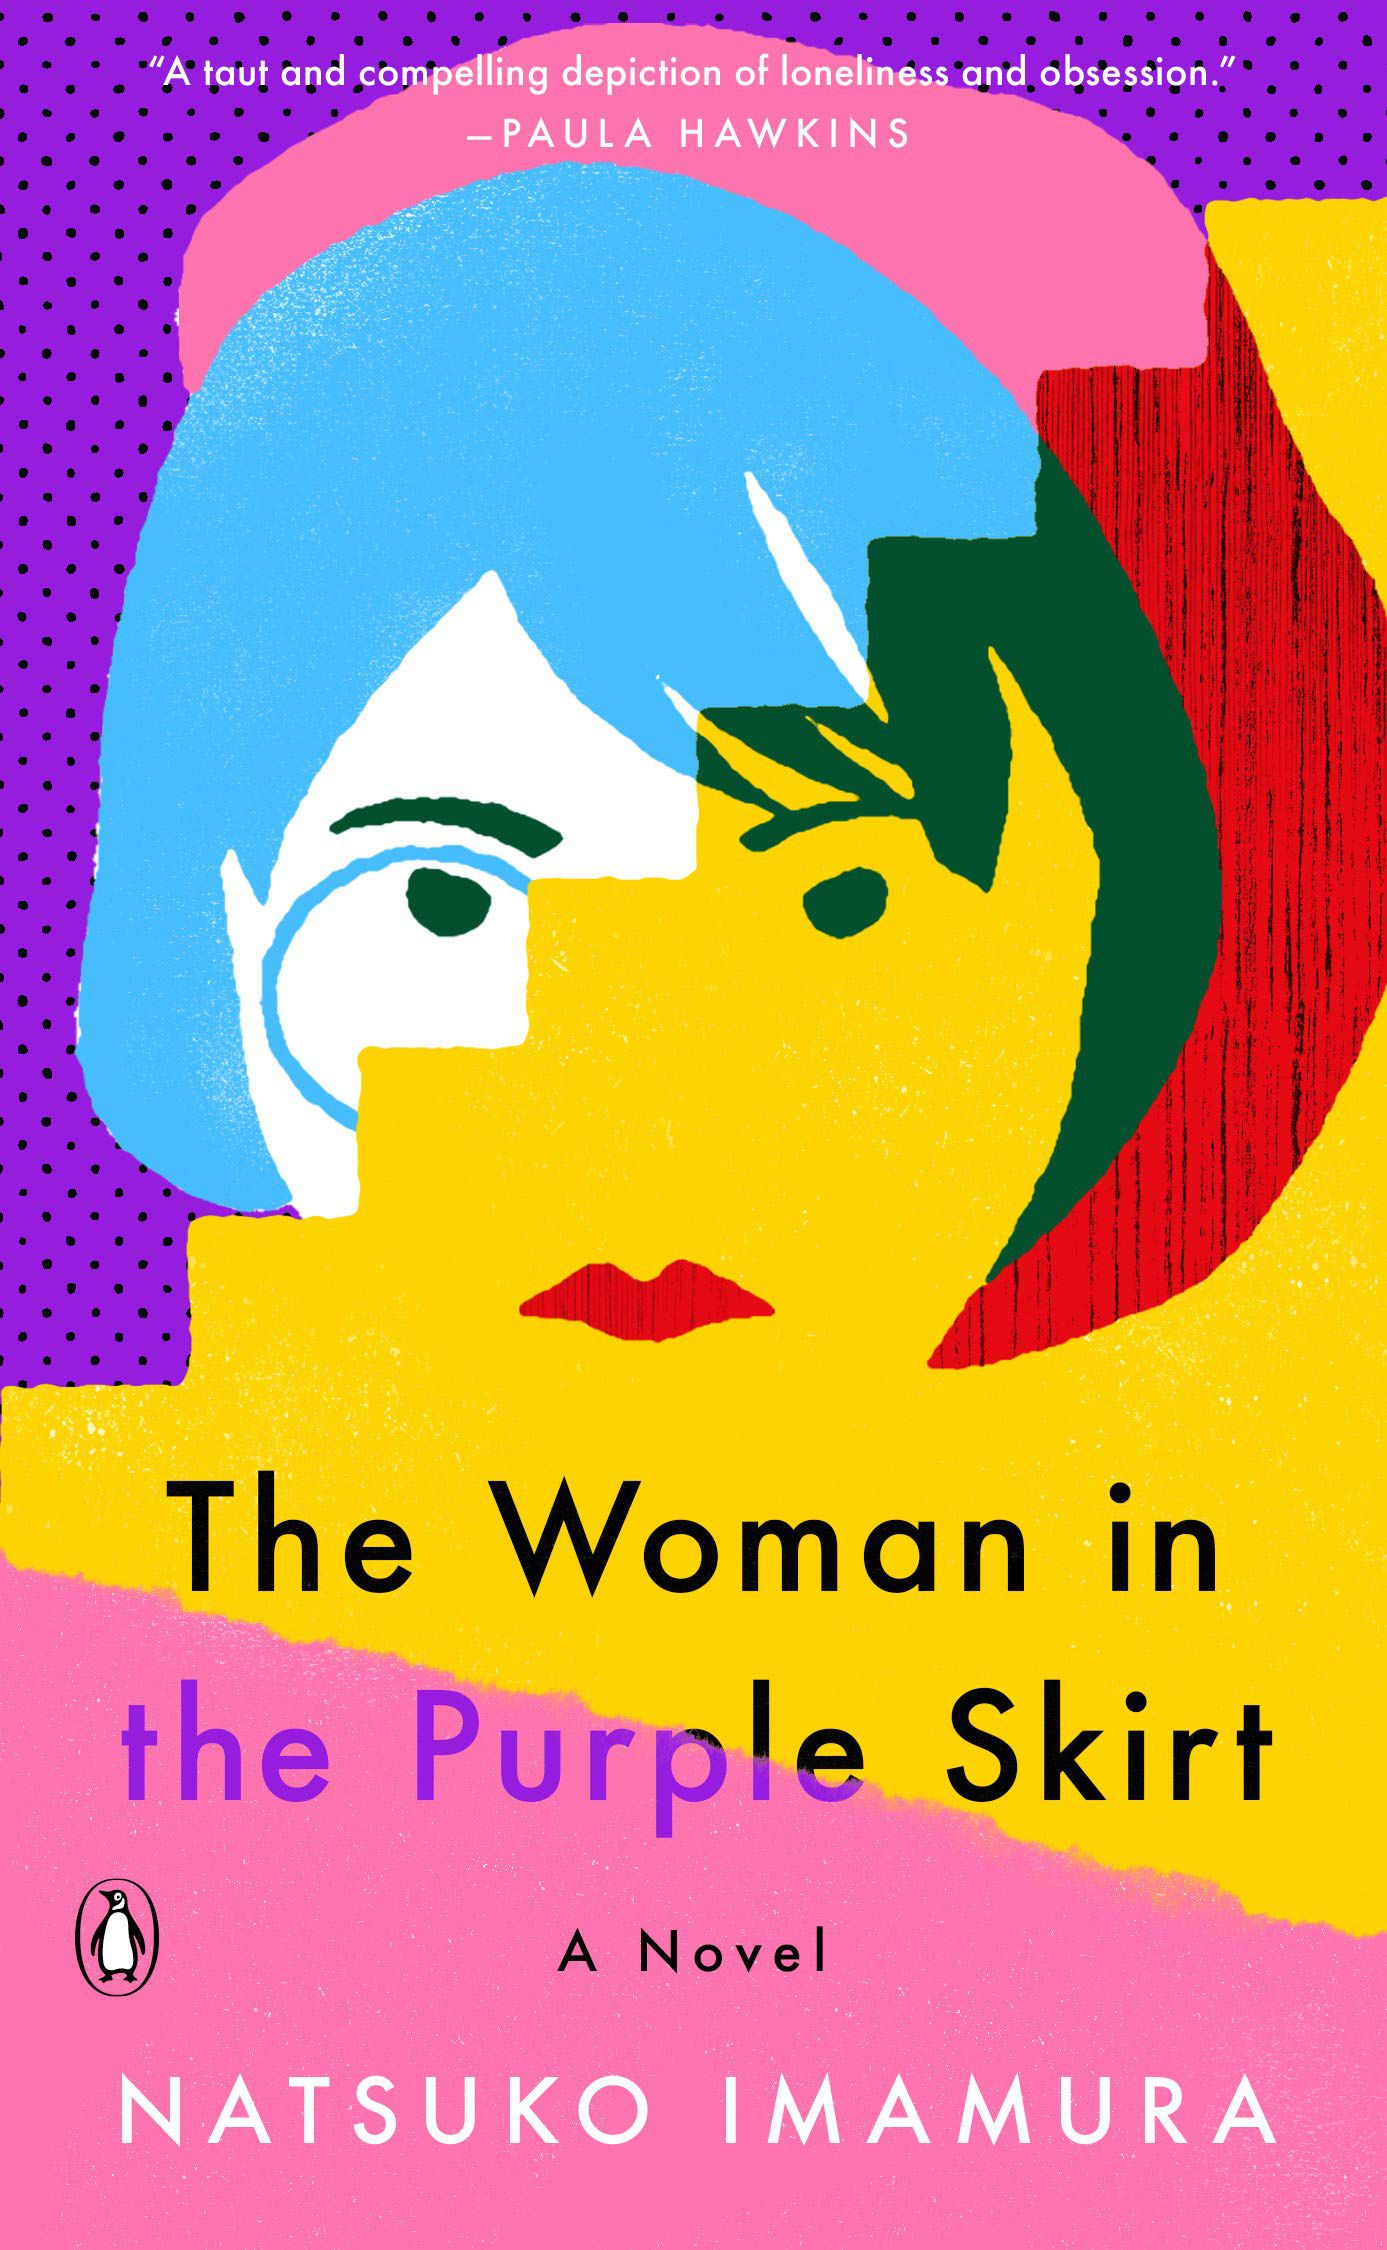 The Woman in the Purple Skirt by Natsuko Imamura, translated by Lucy North